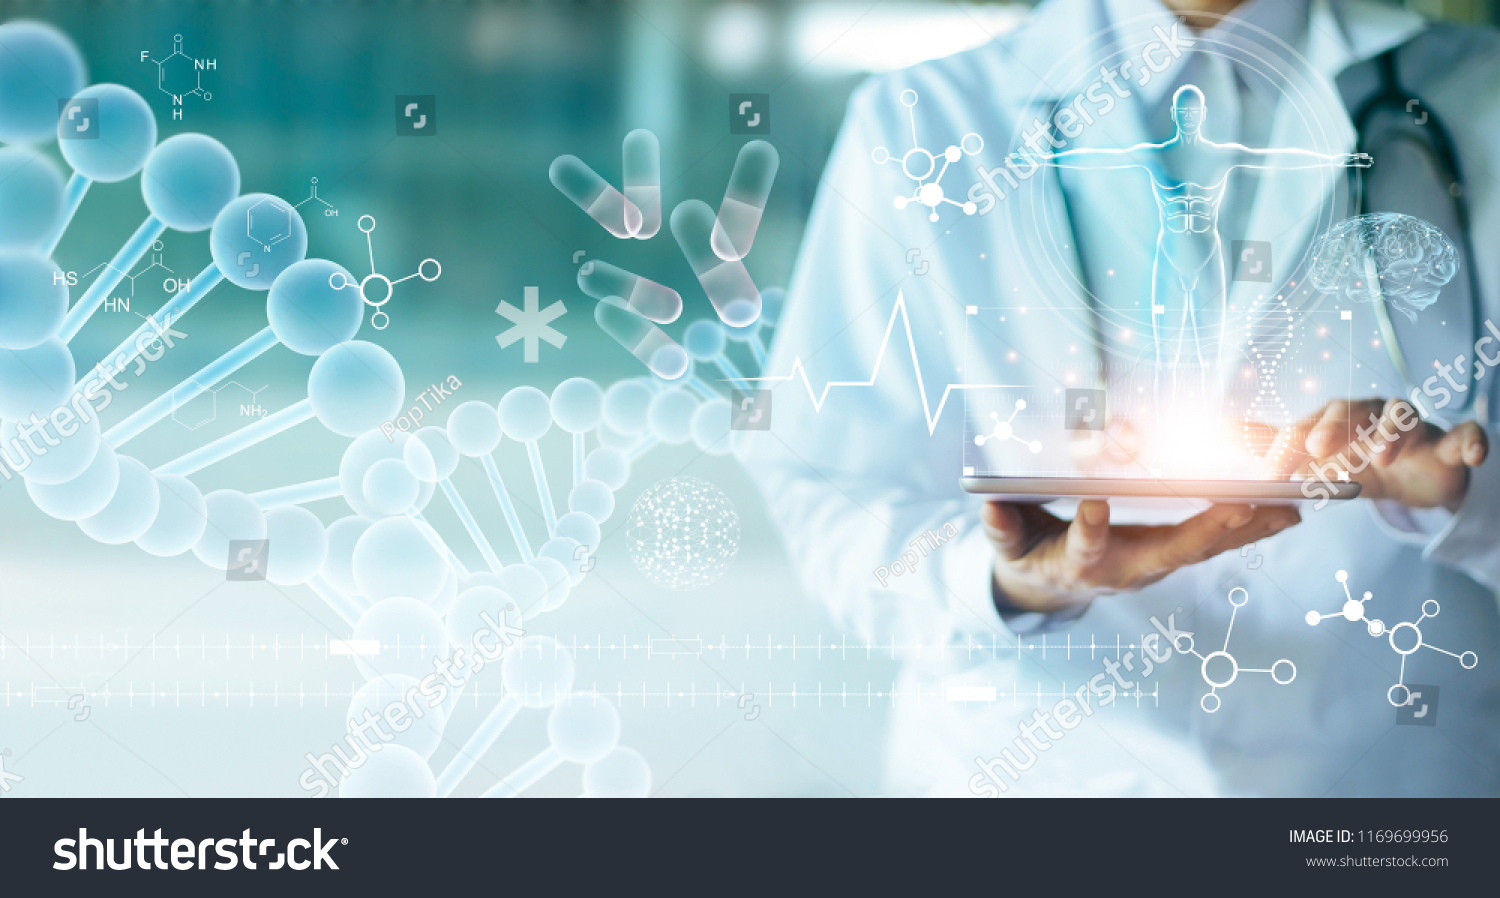 Medicine doctor touching electronic medical record on tablet. DNA. Digital healthcare and network connection on hologram modern virtual screen interface, medical technology and network concept. #1169699956